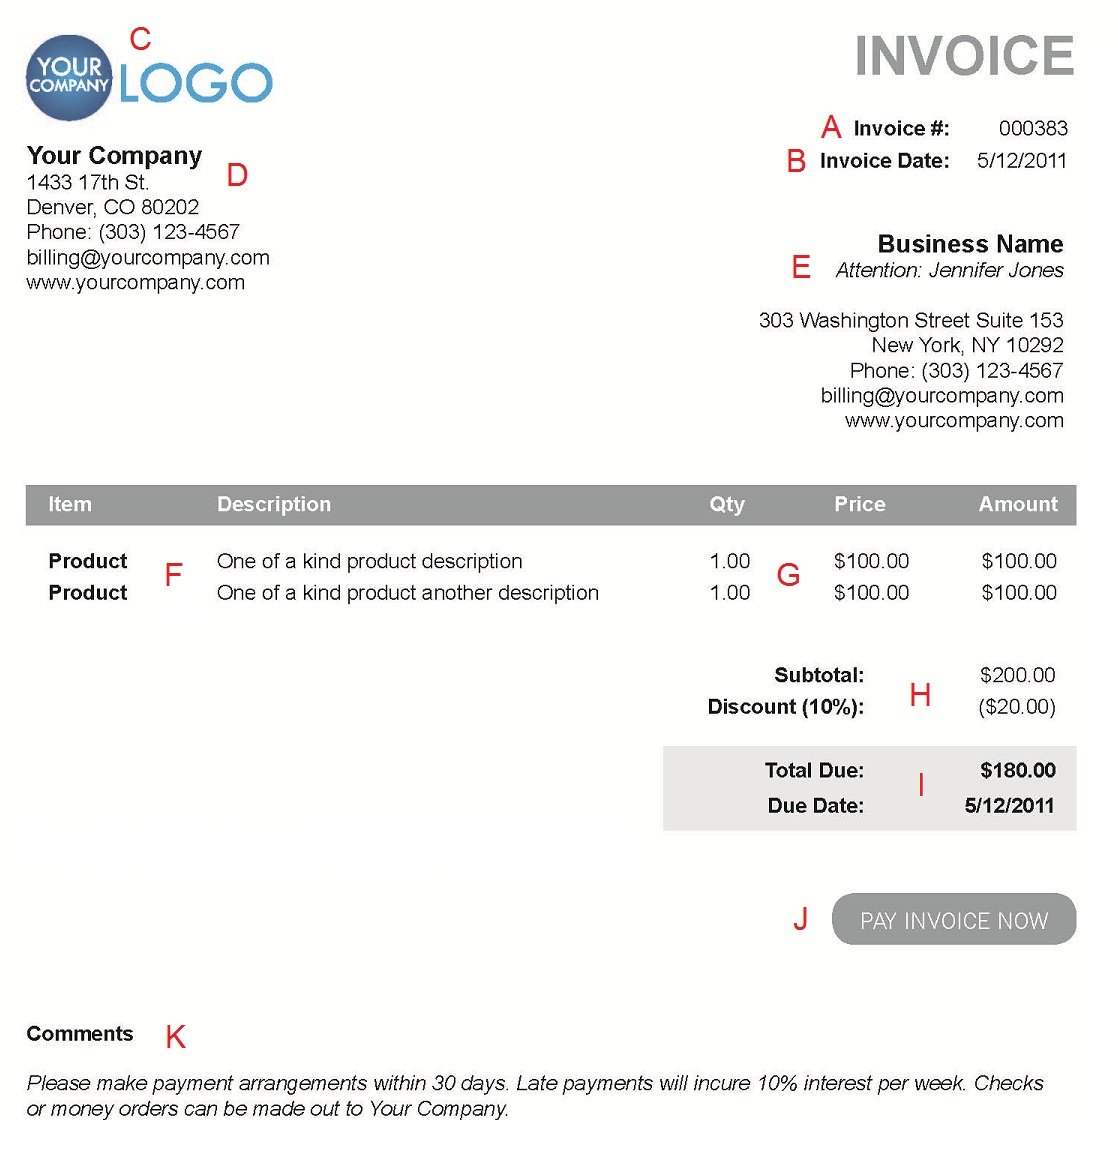 Coolmathgamesus  Personable The  Different Sections Of An Electronic Payment Invoice With Inspiring A  With Amazing Excel Template Receipt Also Receipts Sample In Addition Receipts Examples And Payment Receipt Letter Sample As Well As Digital Receipts System Additionally Wording For Receipt Of Payment From Paysimplecom With Coolmathgamesus  Inspiring The  Different Sections Of An Electronic Payment Invoice With Amazing A  And Personable Excel Template Receipt Also Receipts Sample In Addition Receipts Examples From Paysimplecom